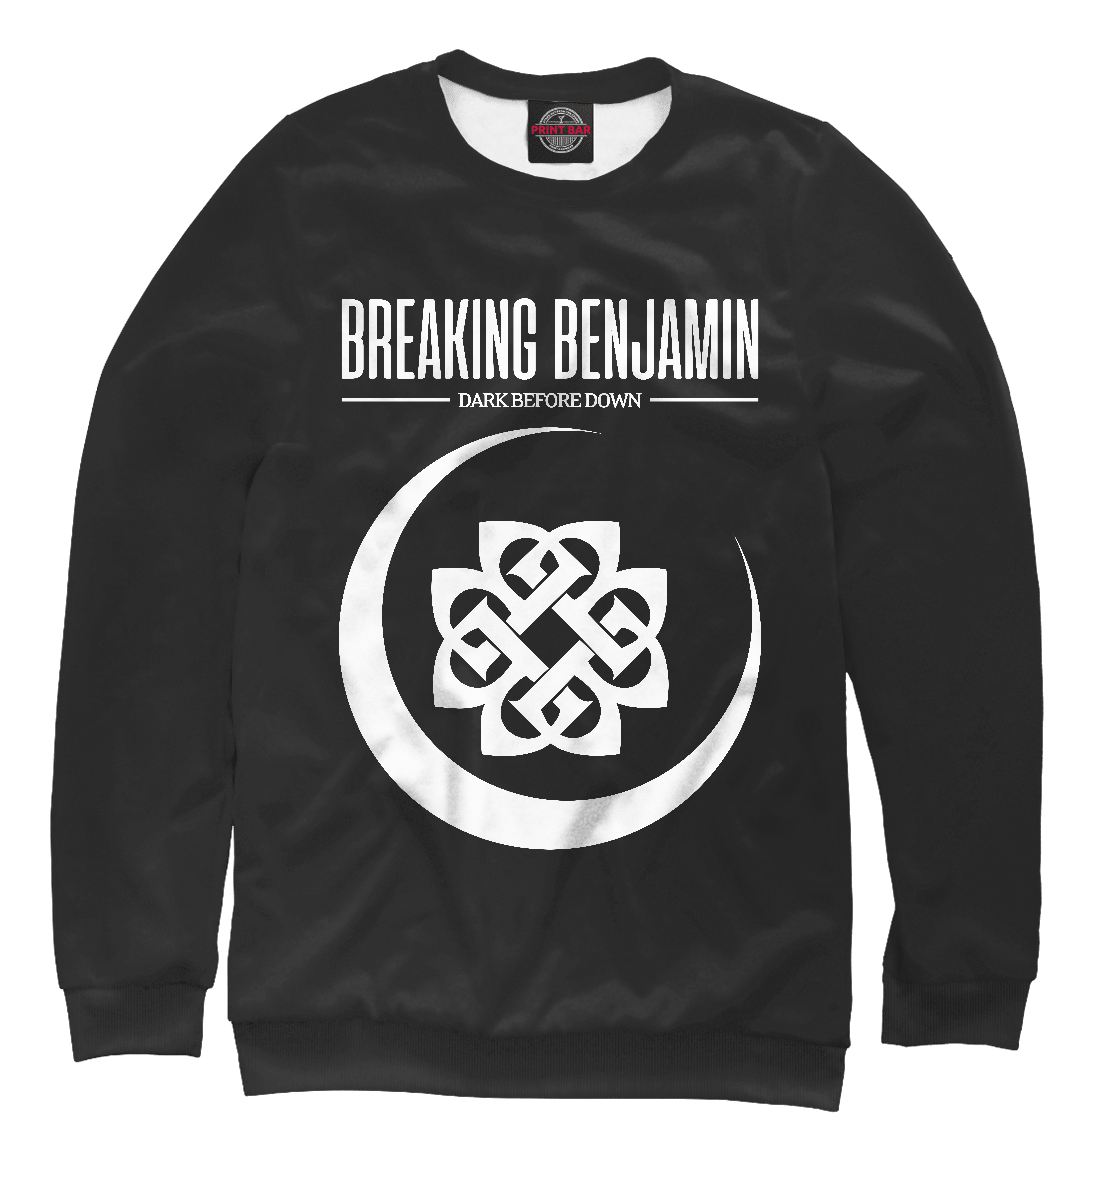 Купить Breaking Benjamin, Printbar, Свитшоты, MZK-942225-swi-2